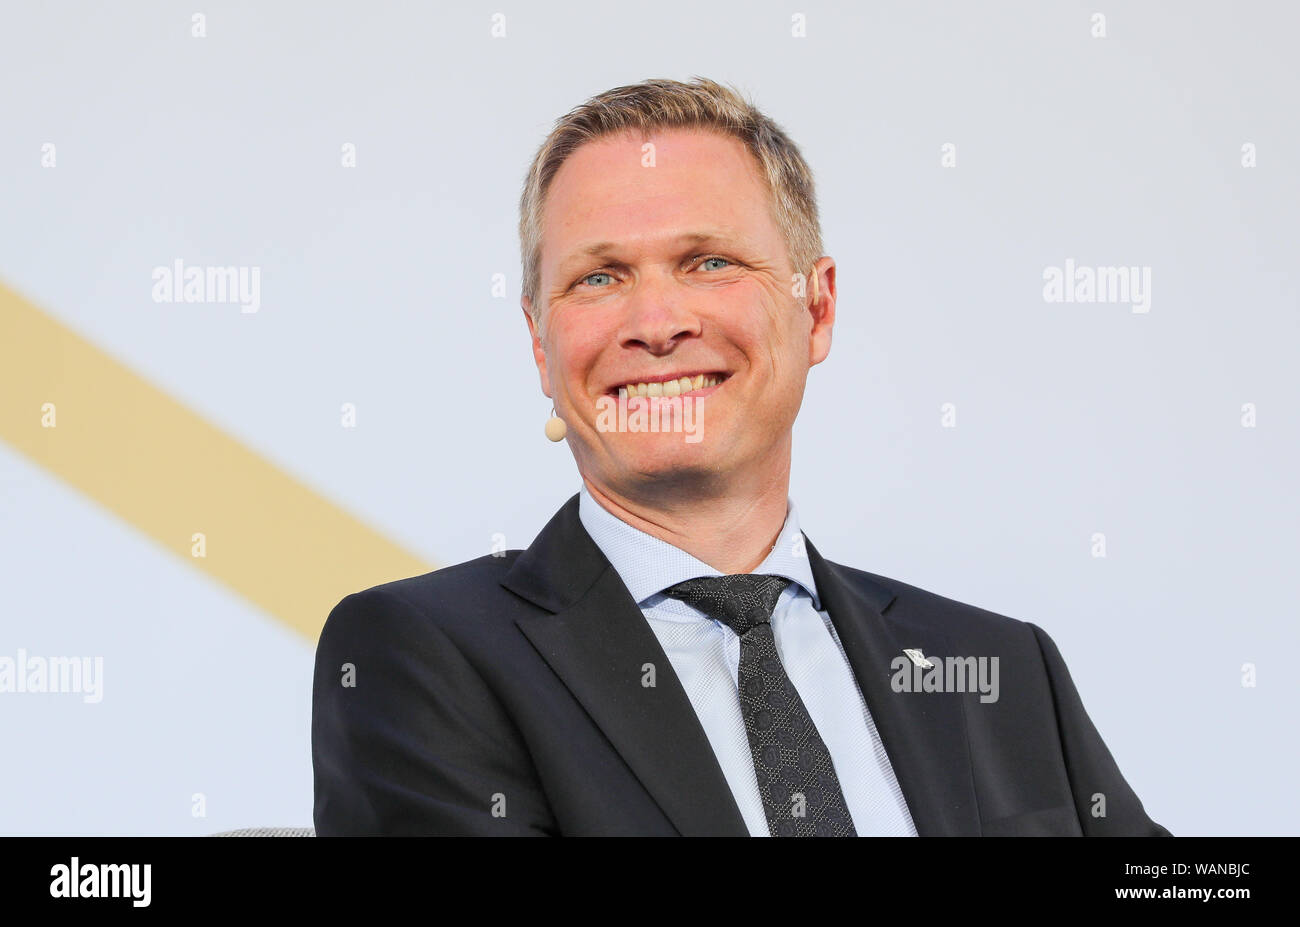 Schkeuditz, Germany. 21st Aug, 2019. Dirk Geisinger, CEO of the engine manufacturer Rolls-Royce, sits on the podium of the first National Aviation Conference at Leipzig-Halle Airport. Credit: Jan Woitas/dpa-Zentralbild/dpa/Alamy Live News Stock Photo